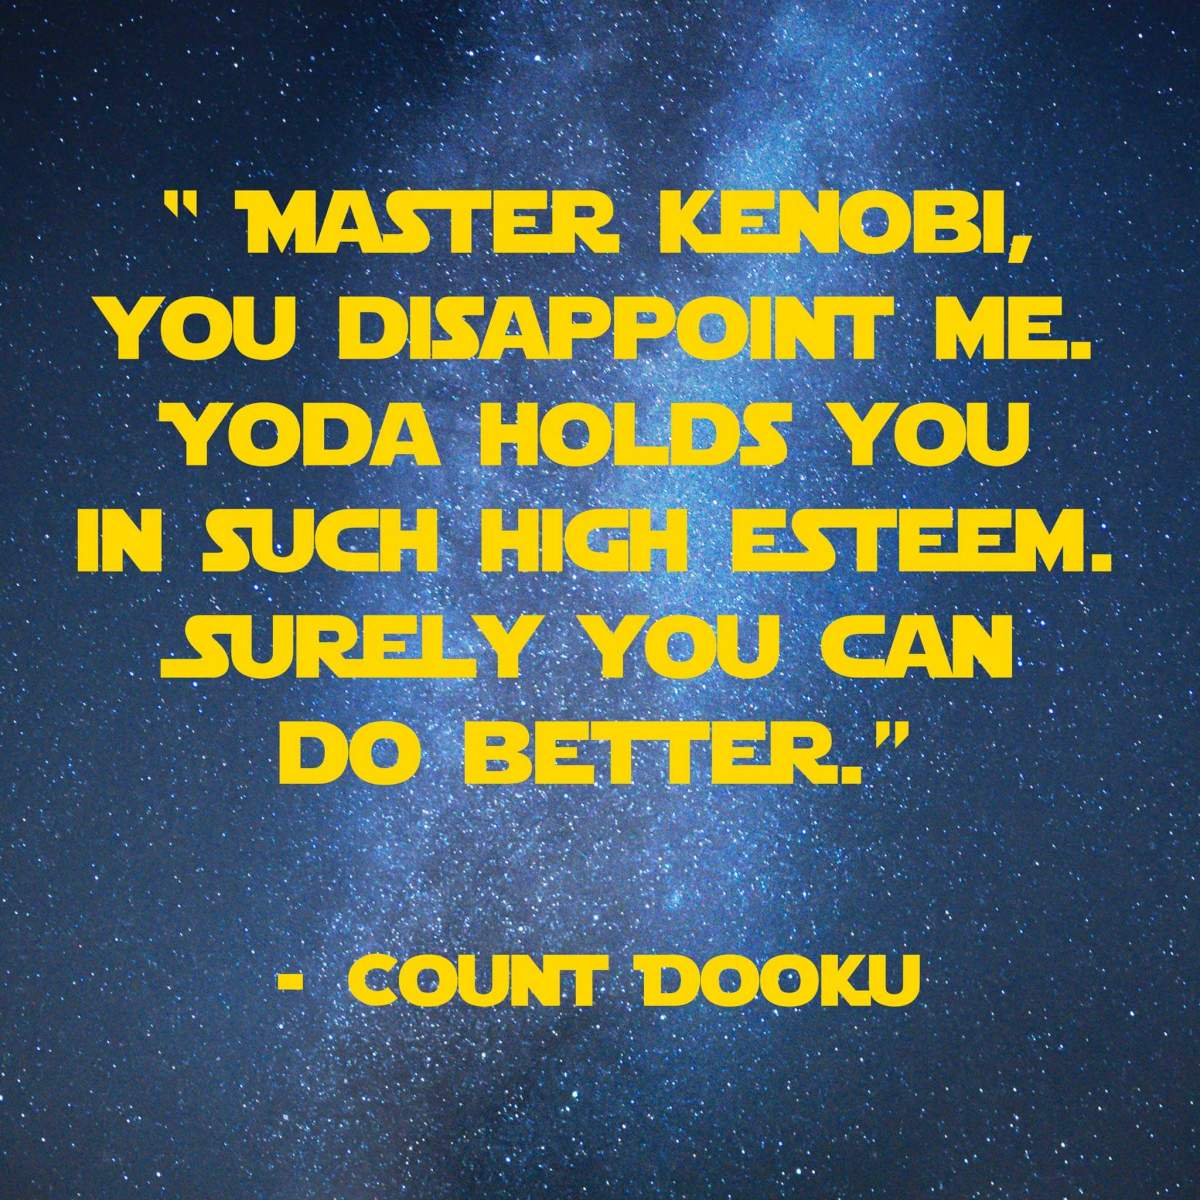 Master-kenobi-you-disappoint-me | 31 Memorable Star Wars Quotes for Geeks